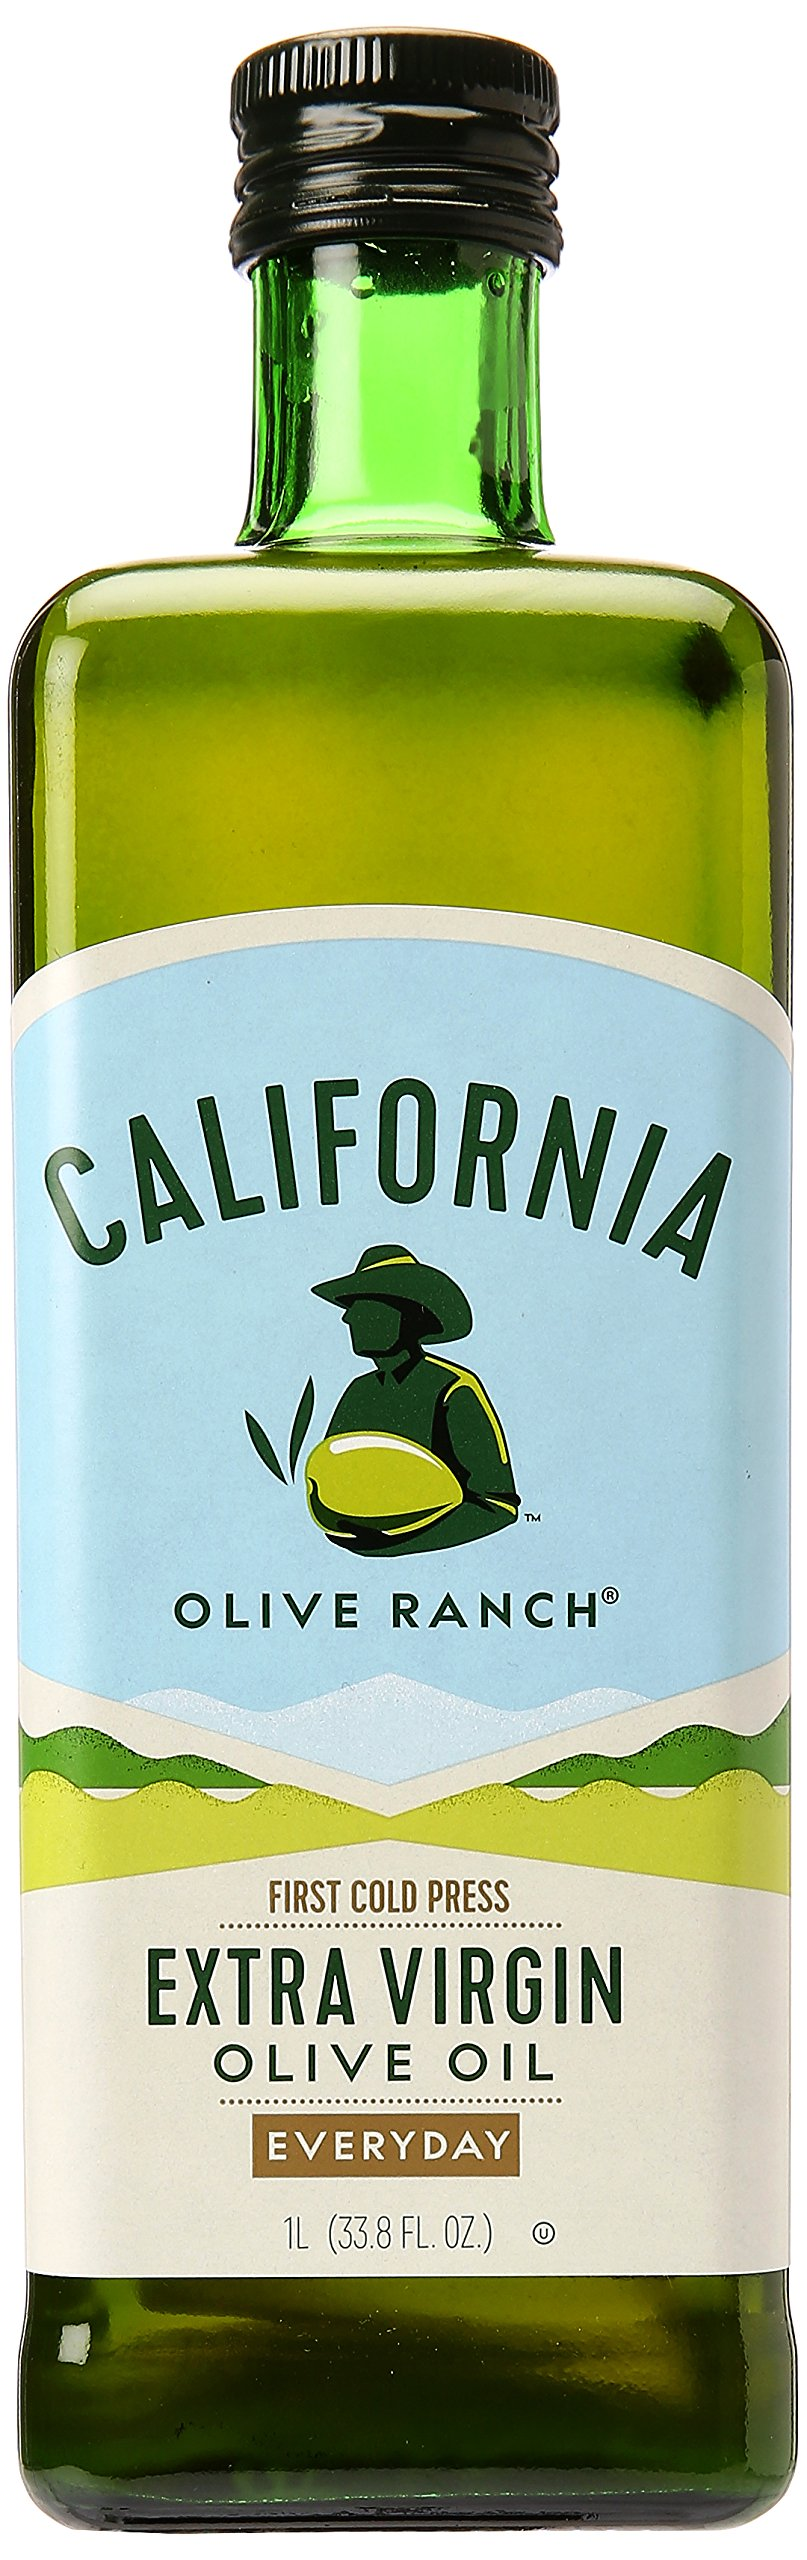 California Olive Ranch Everyday Extra Virgin Olive Oil, 33.81 Ounce